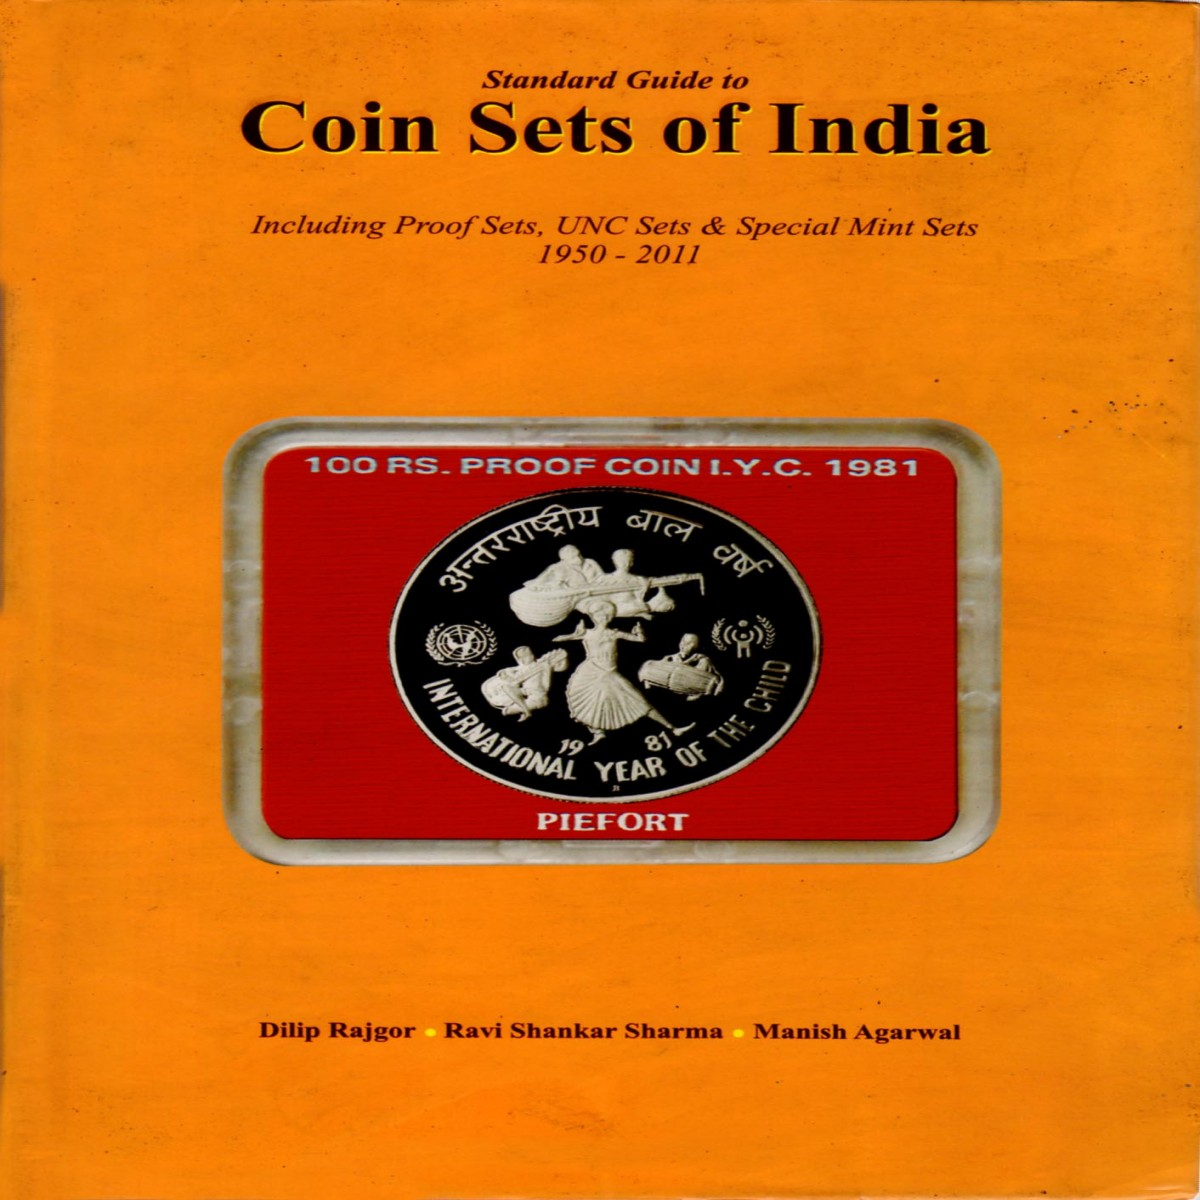 Standard Guide to Coins Sets of India- Including Proof Sets, UNC Sets & Special Mint Sets 1950-2011